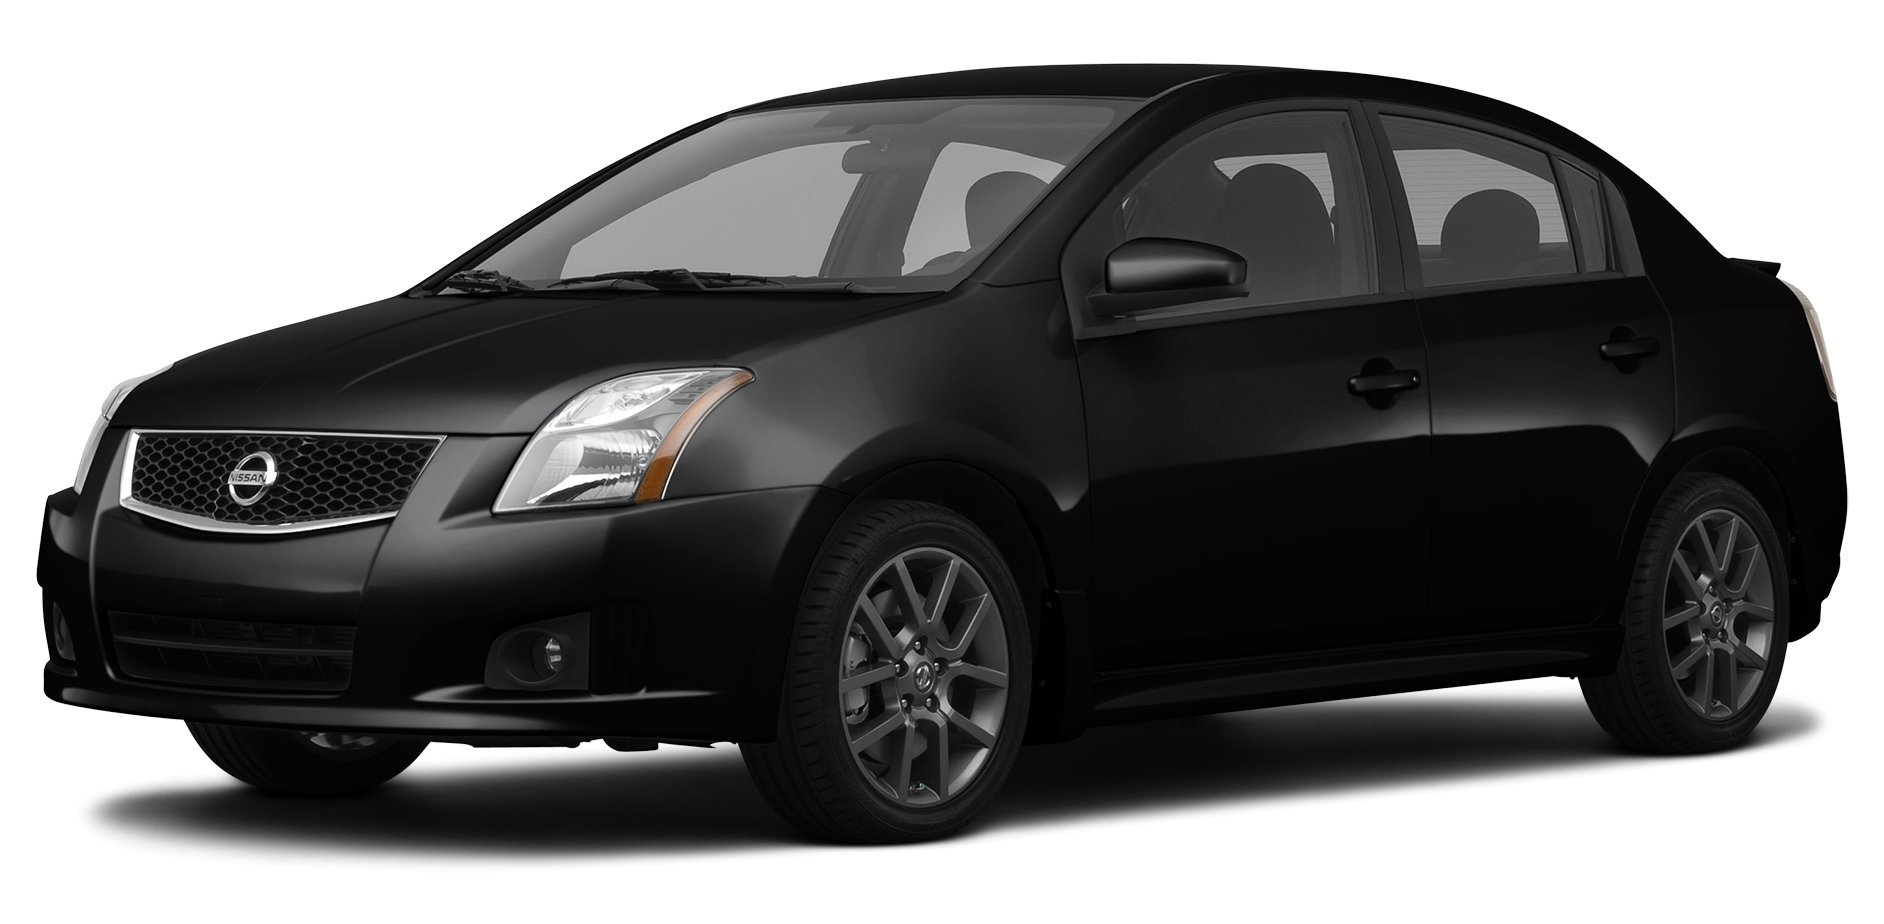 Amazon com: 2011 Nissan Sentra Reviews, Images, and Specs: Vehicles